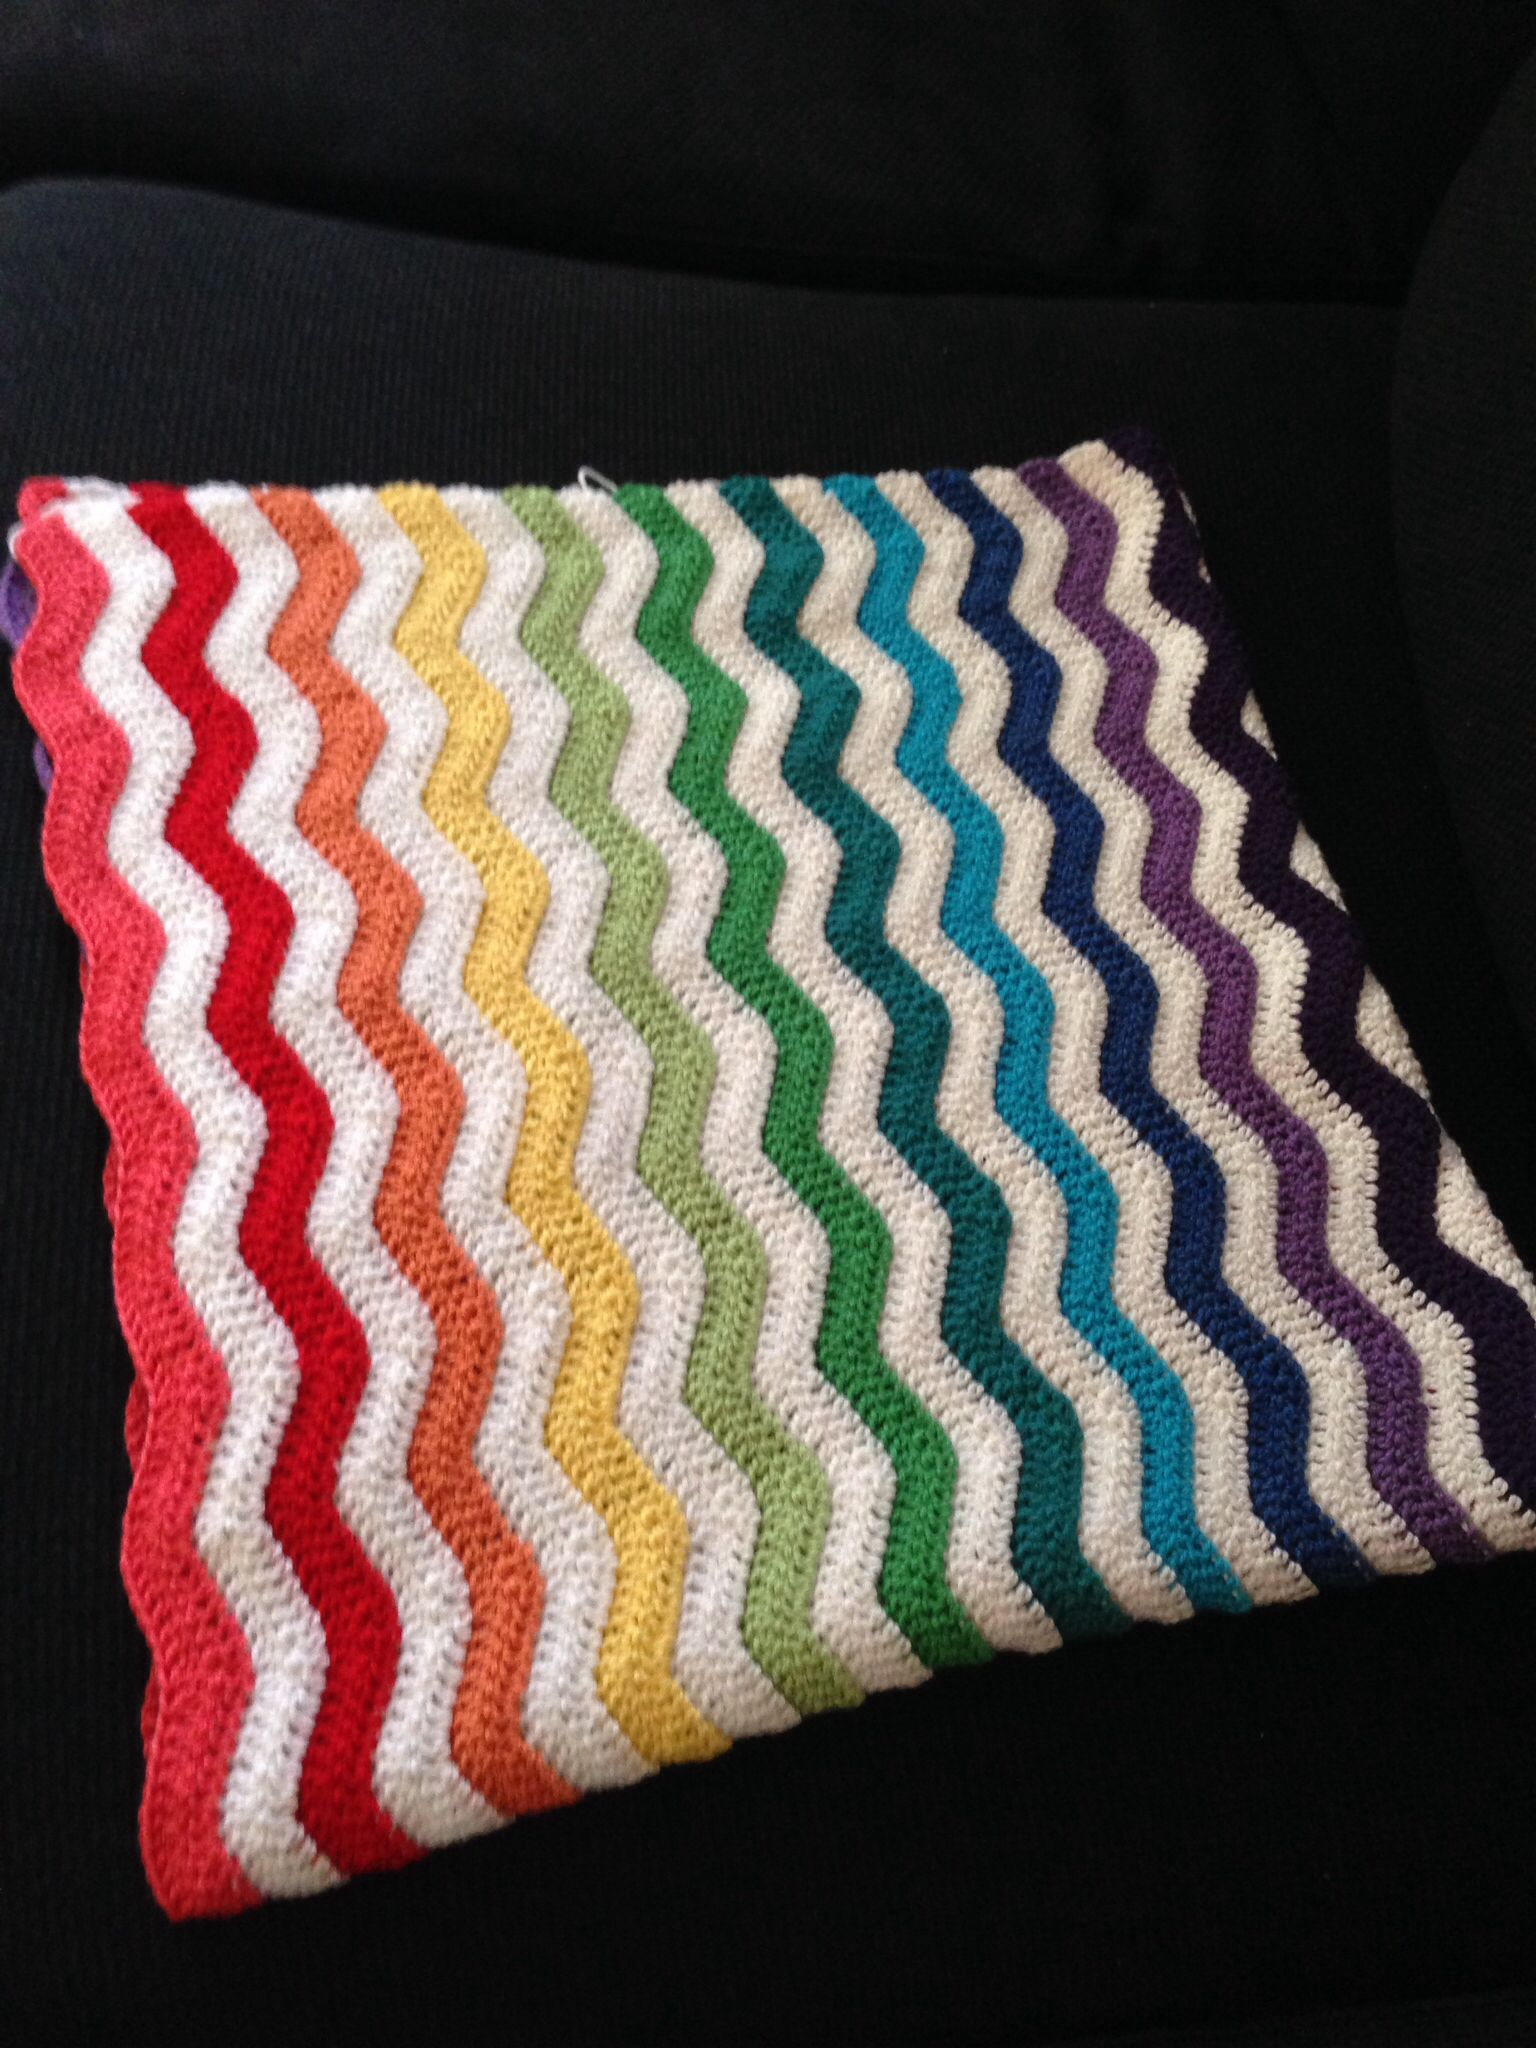 Ripple blanket. #crochet  Custom made crotchet blankets. For more details contact sivolinpinguin@gmail.com